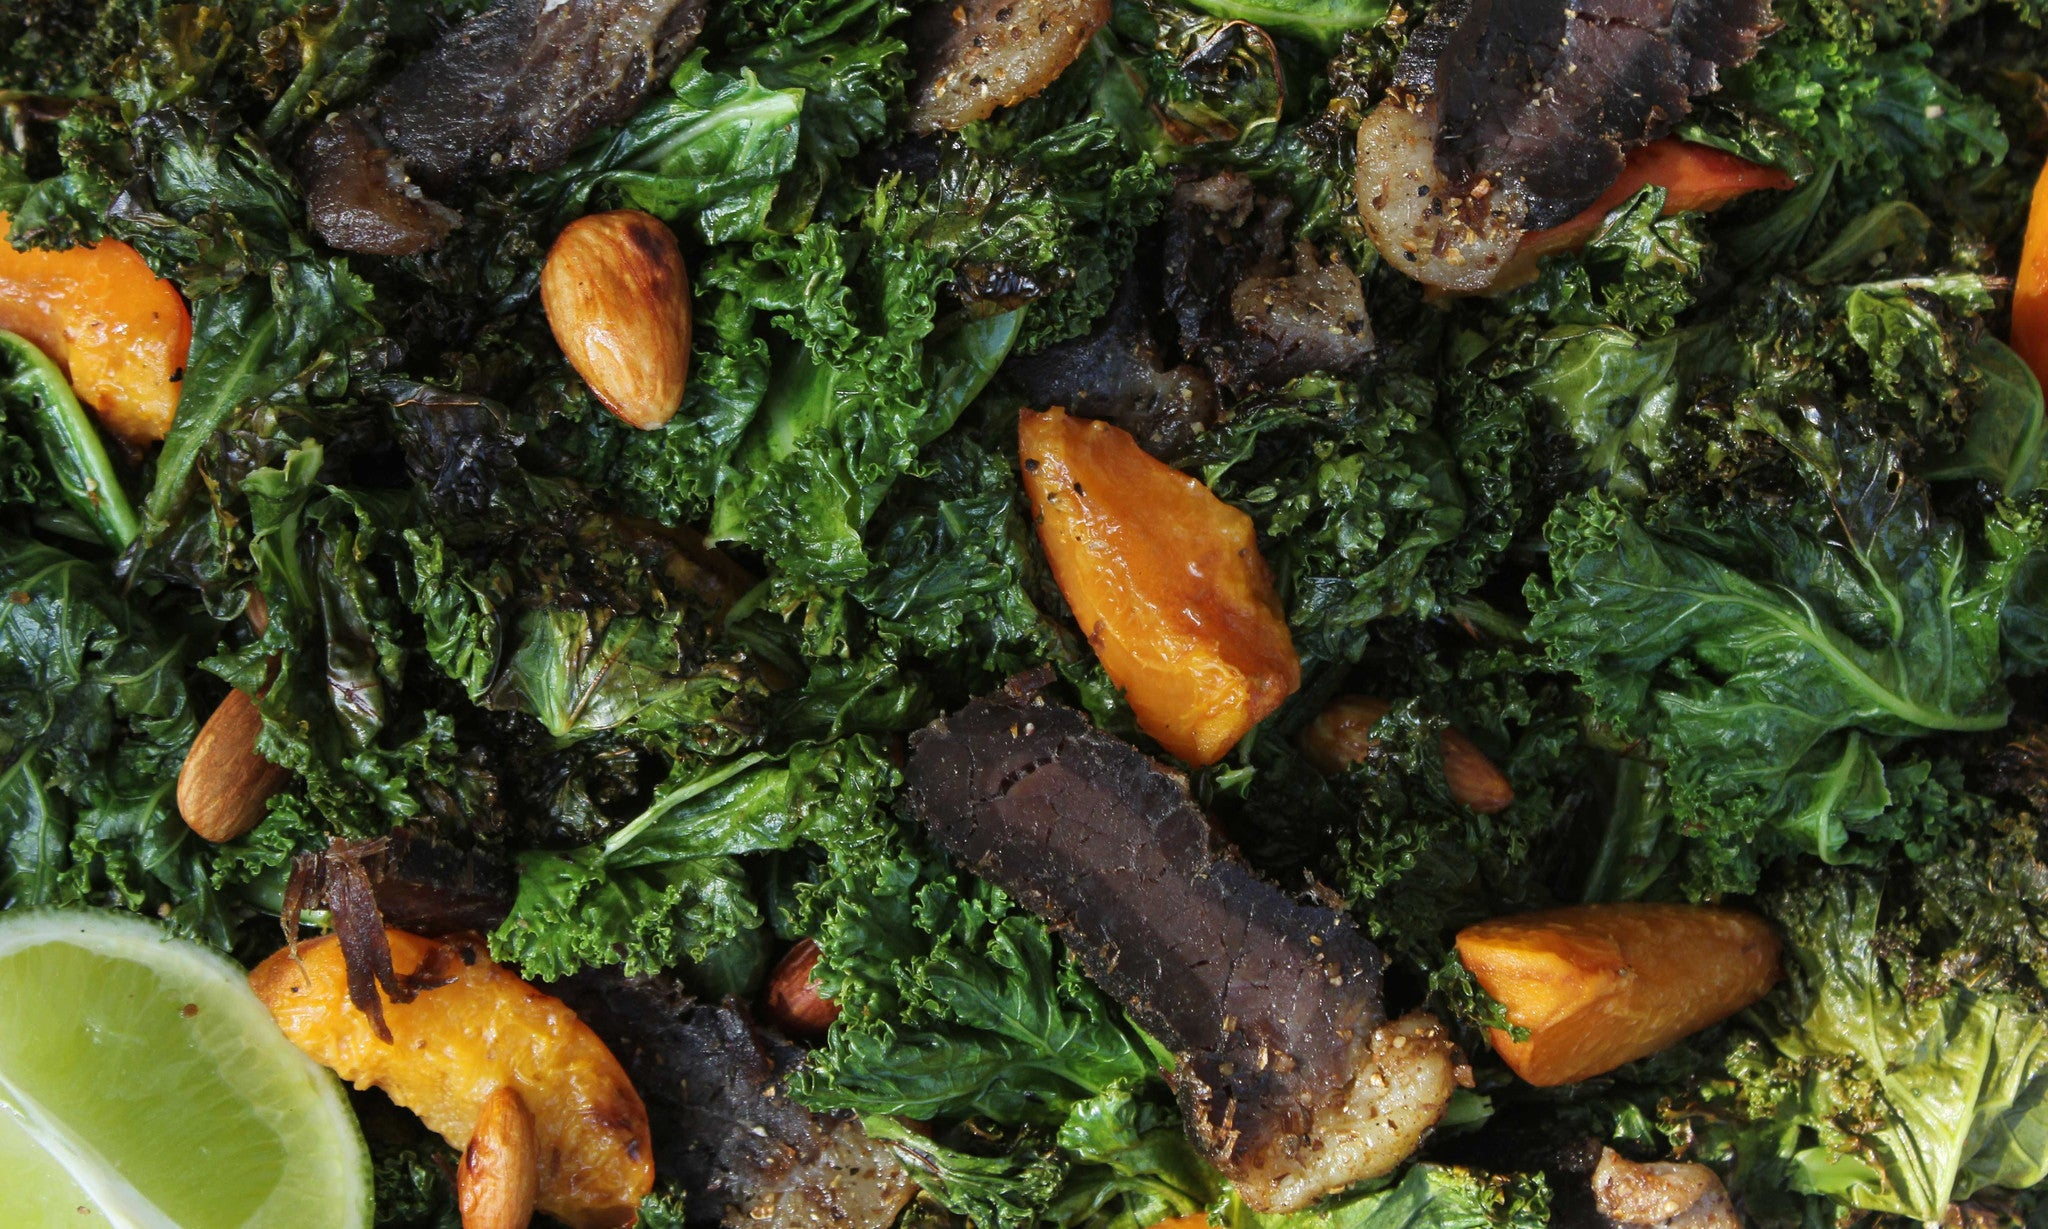 Lime Coated Pan-Fried Kale, Biltong, & Fruit